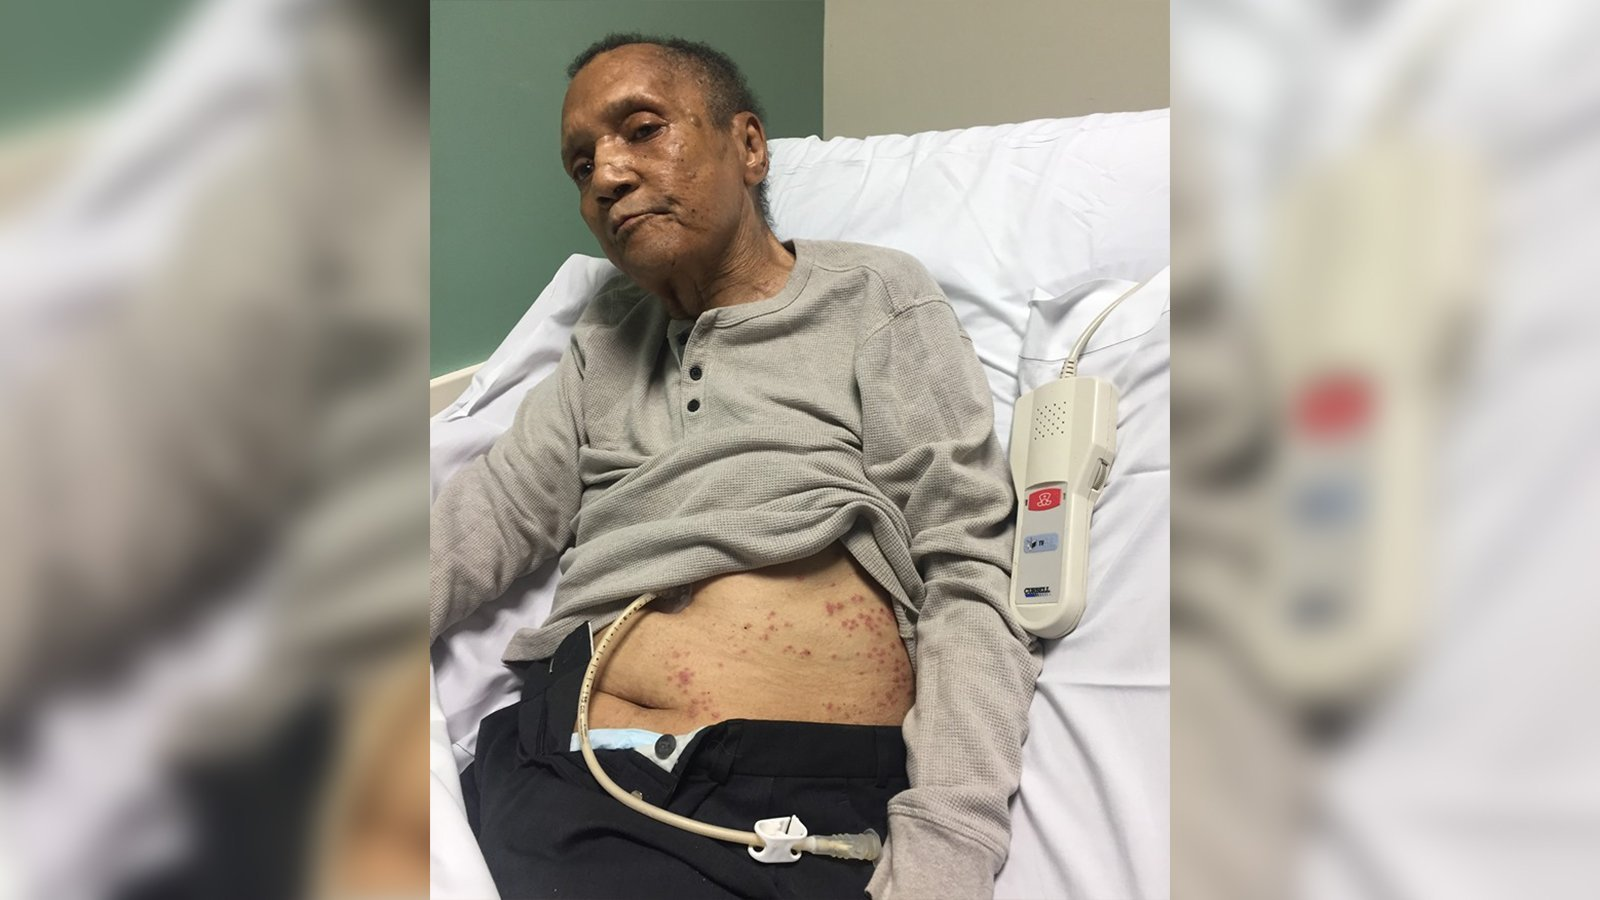 Air Force Veteran Covered in Ant Bites in His Final Days at VA Center, Says Daughter